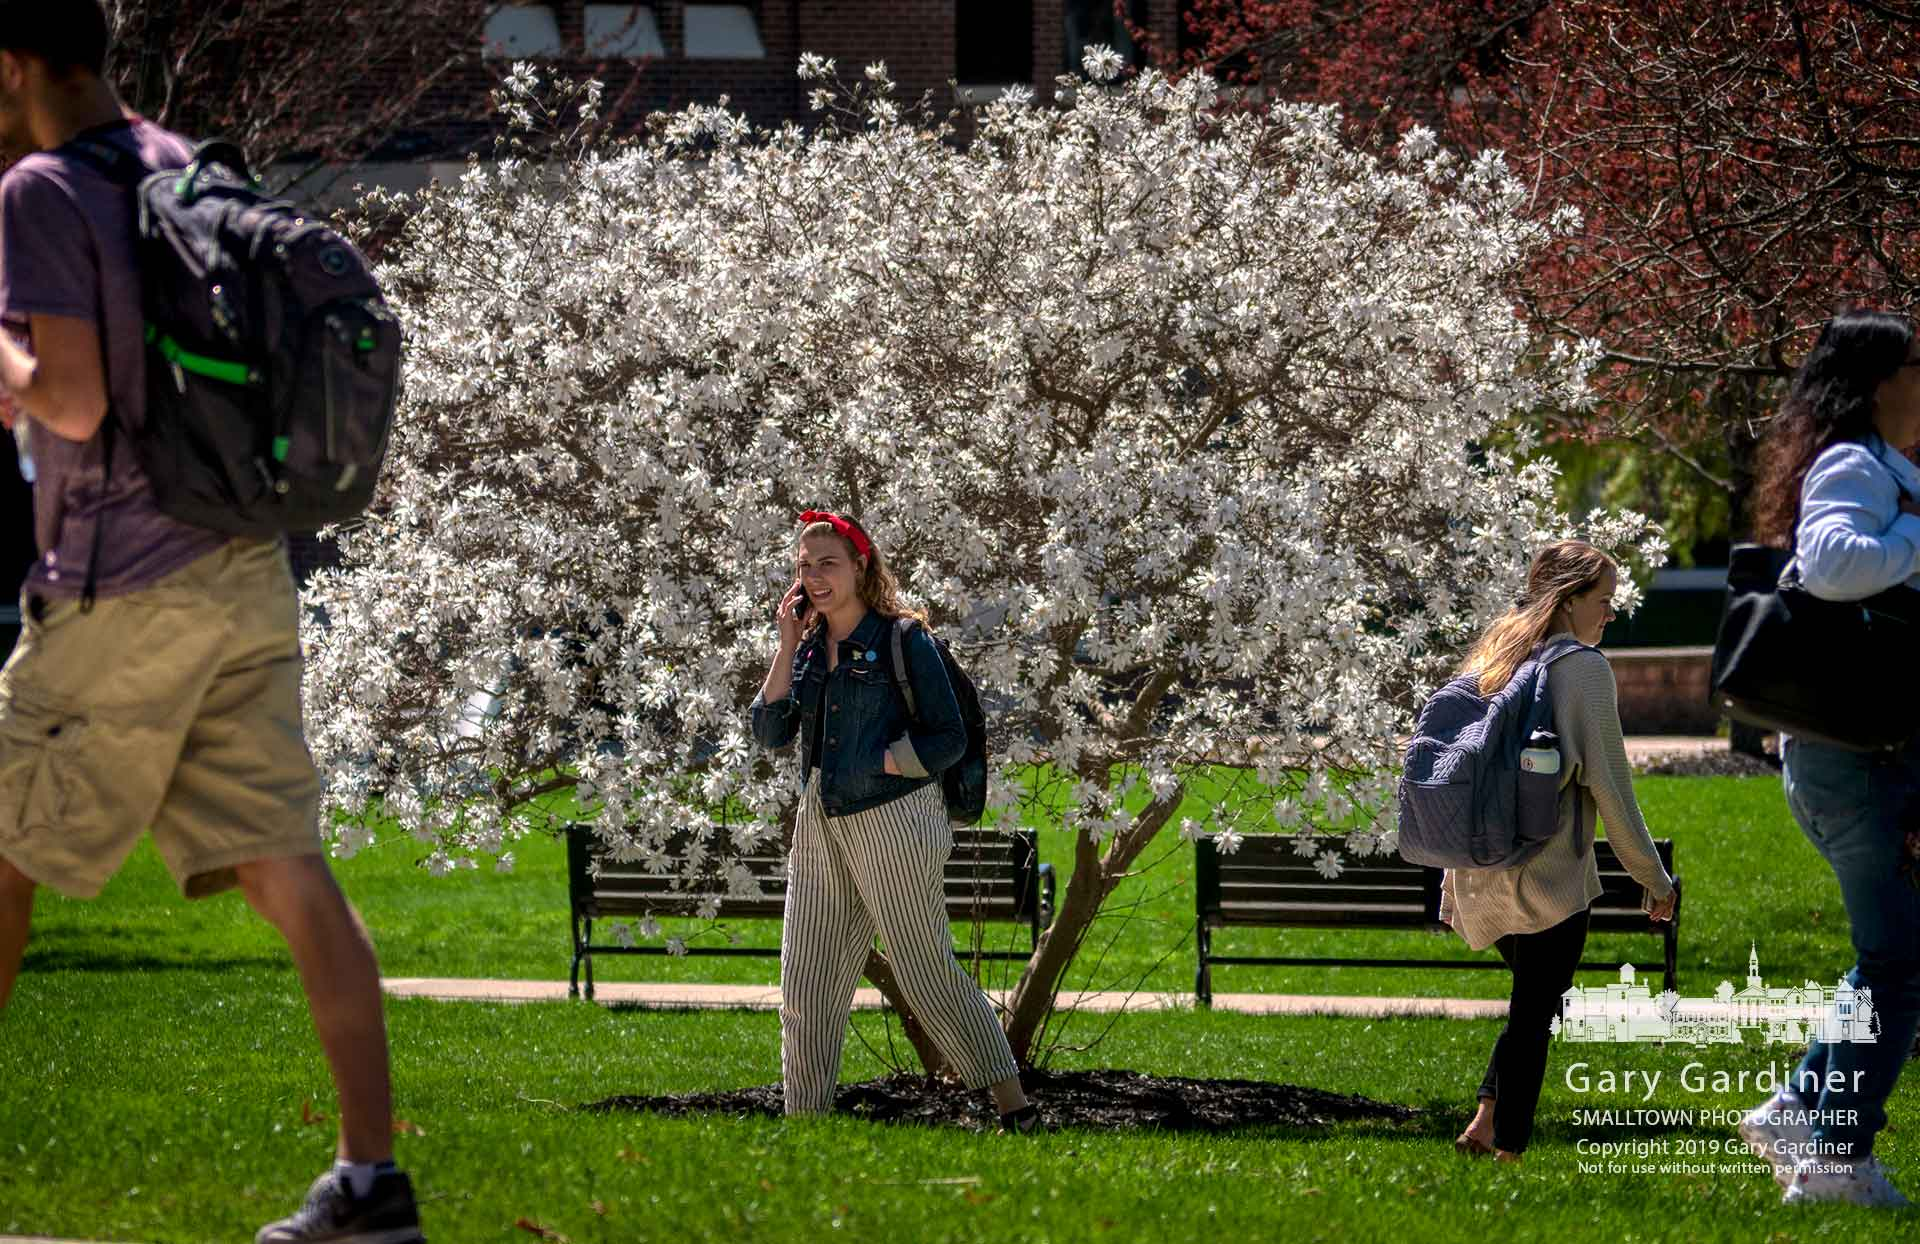 An Otterbein student talks on her phone as she and other students walk past a Japanese magnolia in full bloom between classes Tuesday at the school. My Final Photo for April 9, 2019.